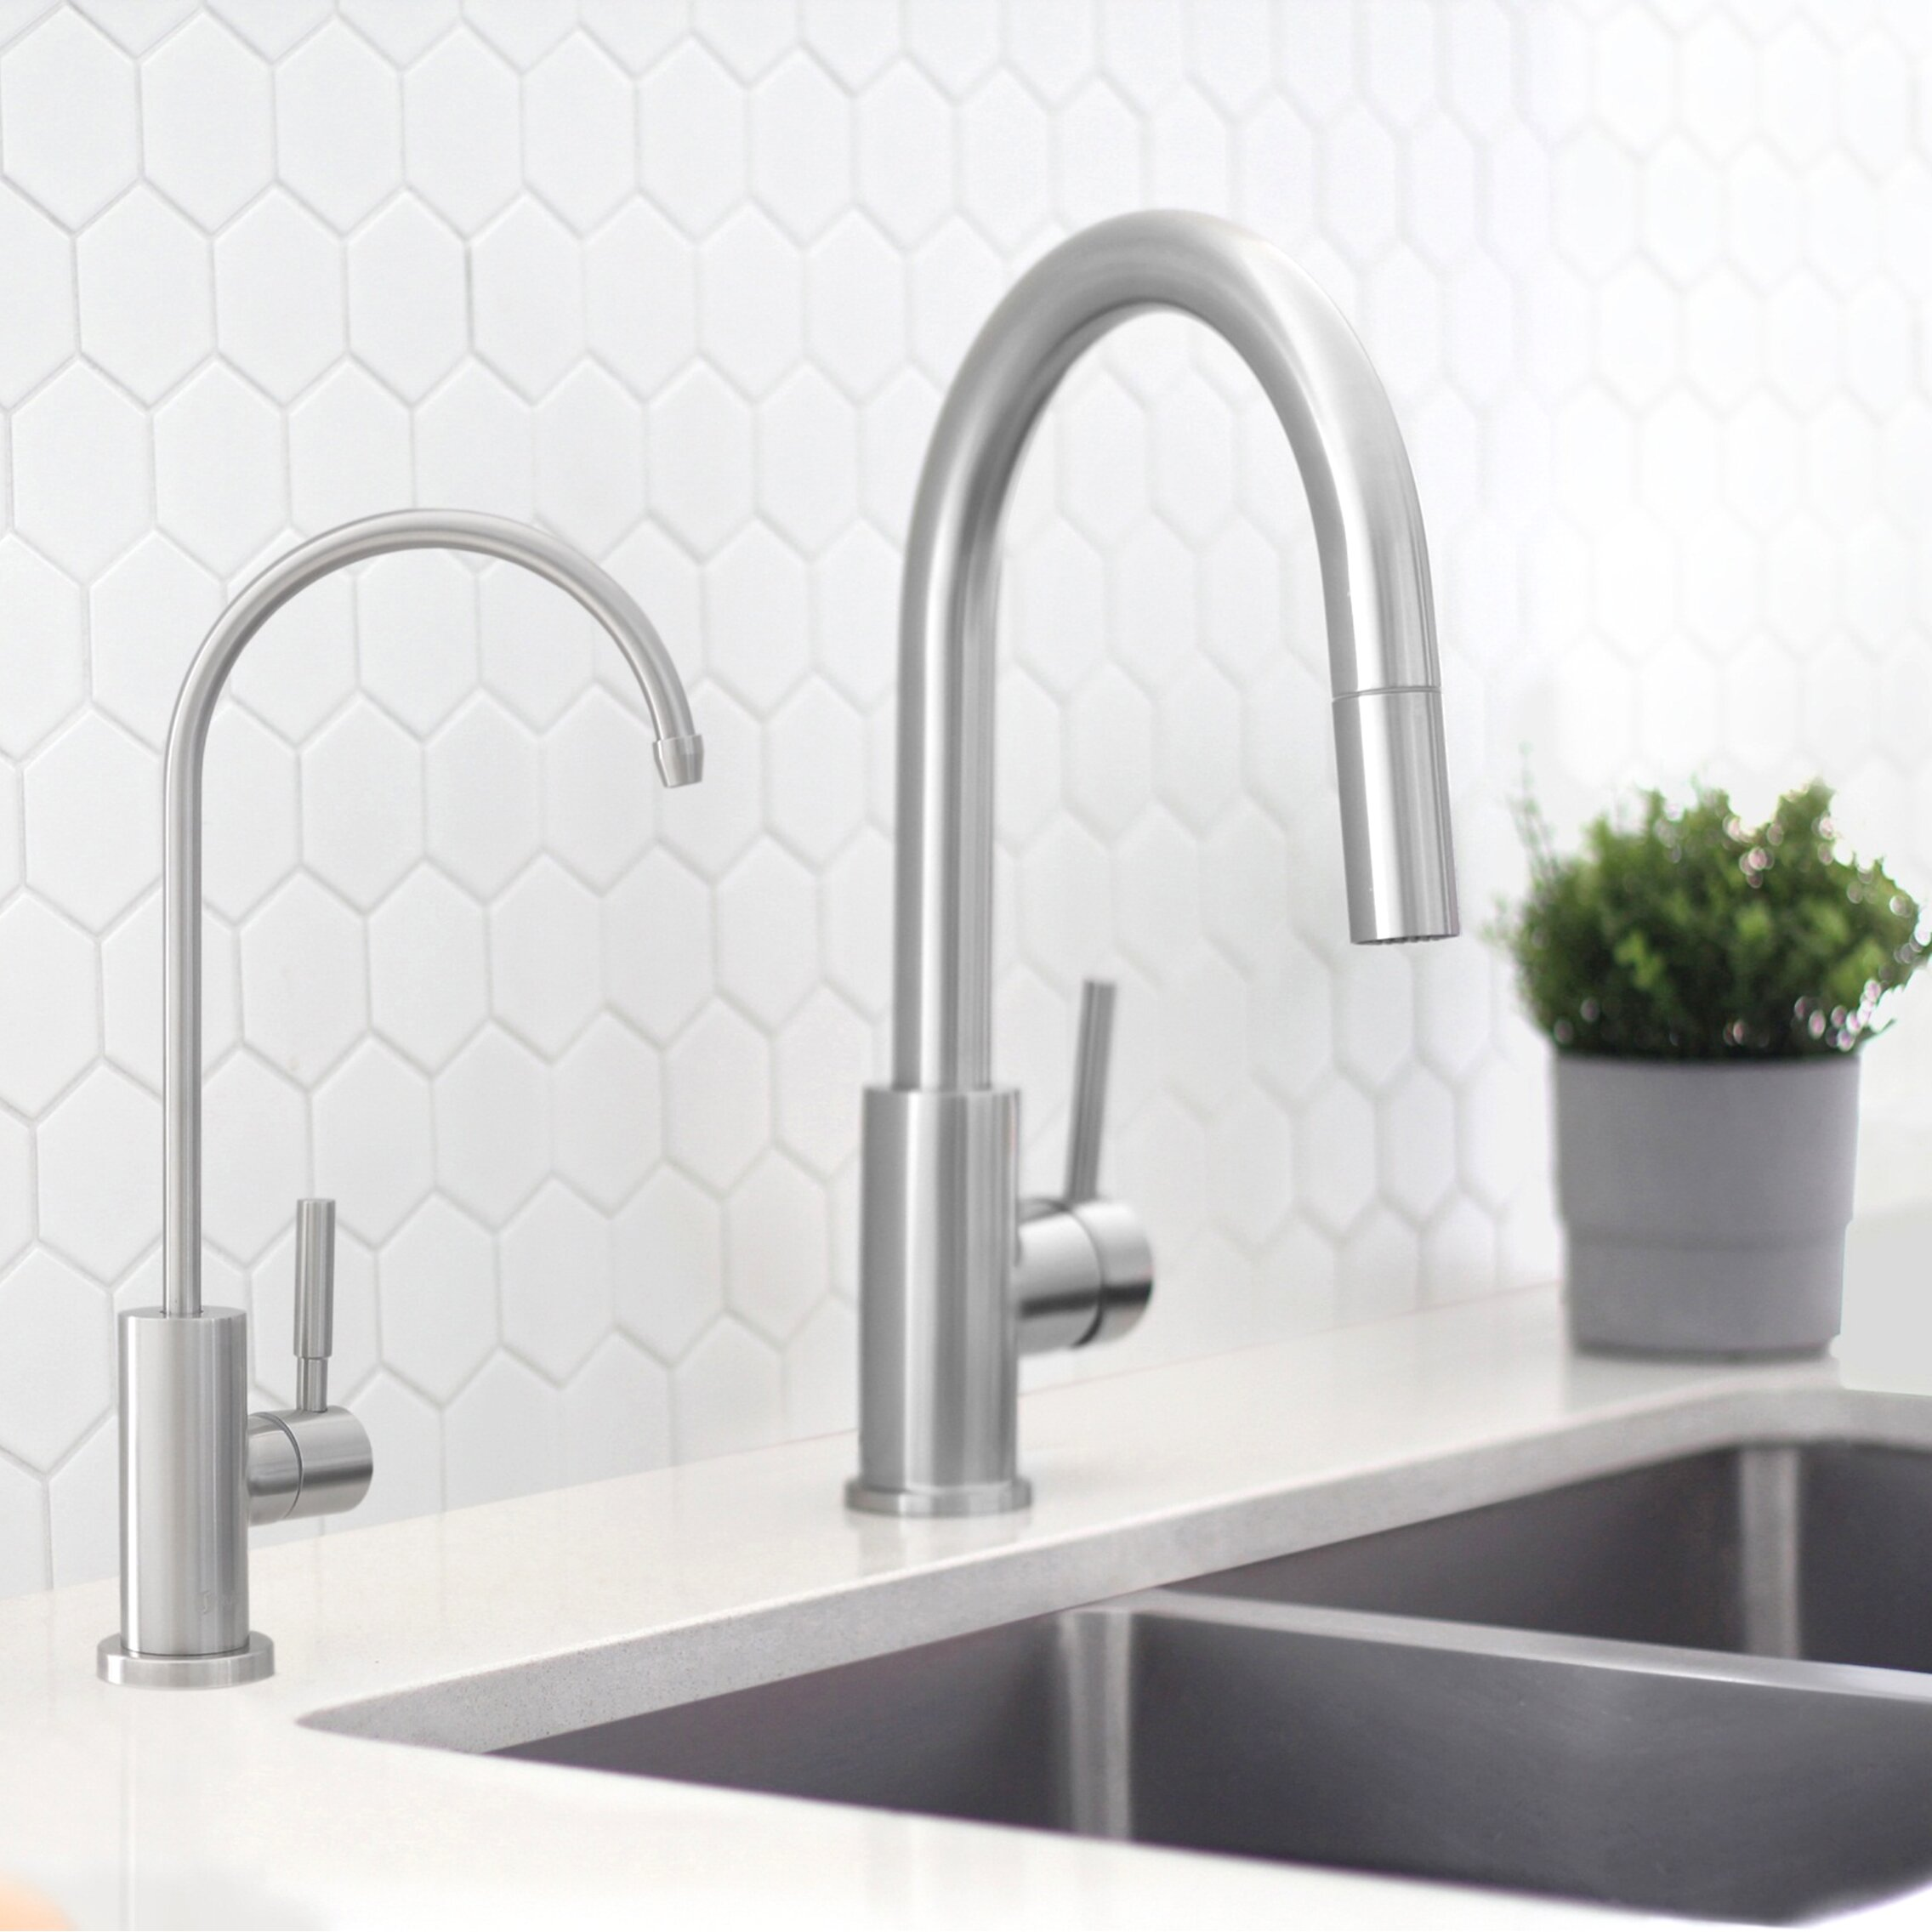 TJJL Kitchen Tap Kitchen Faucet Dual Spout Drinking Water Filter Brass 3 Color Purifier Vessel Sink Mixer Tap Hot And Cold Water